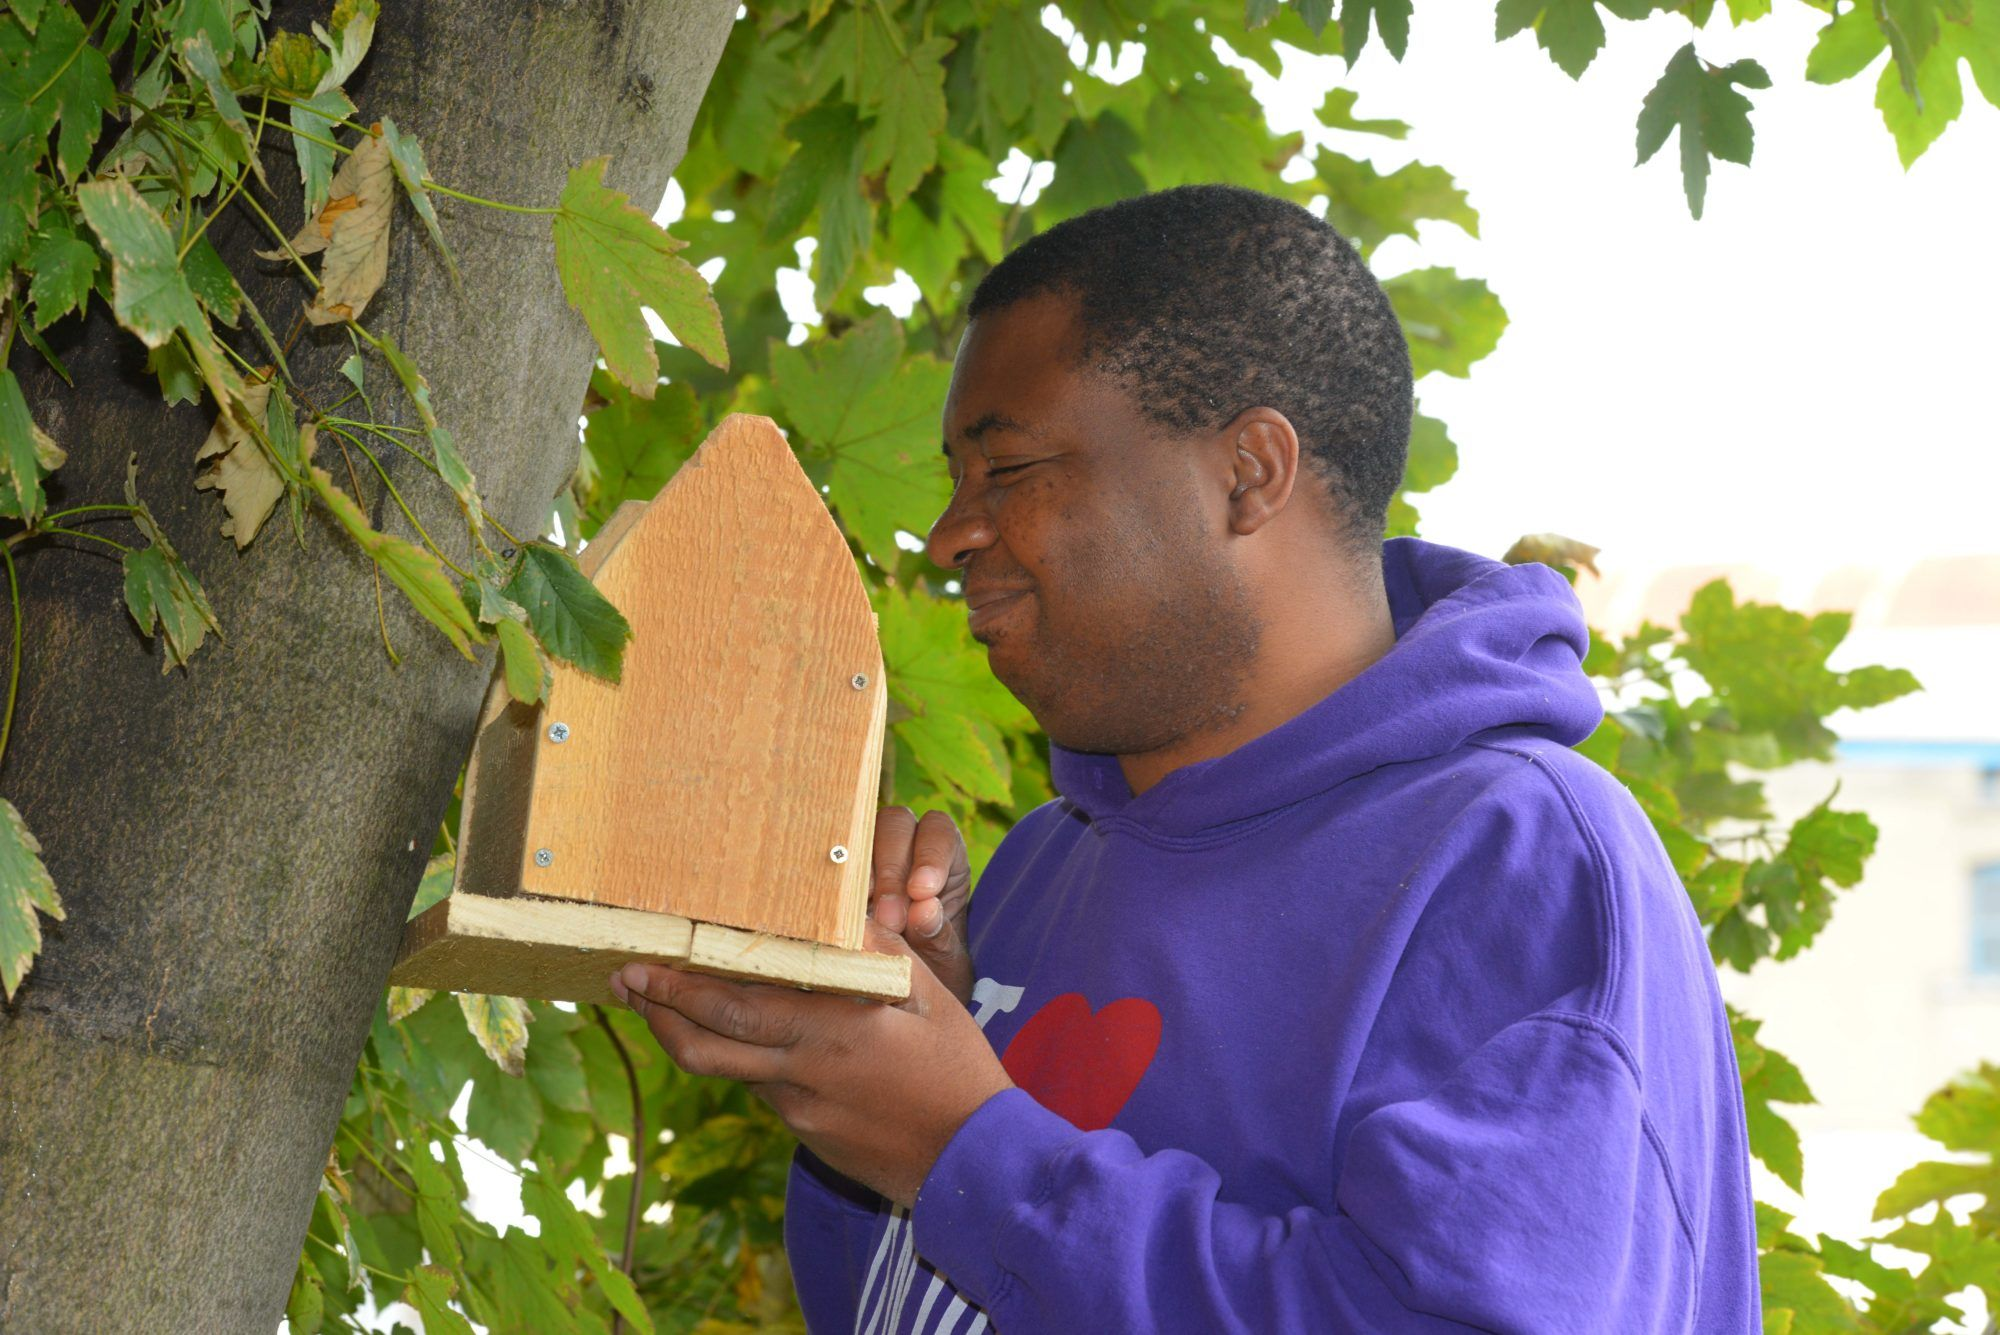 A young man in a purple jumper putting up a bird feeder in a tree